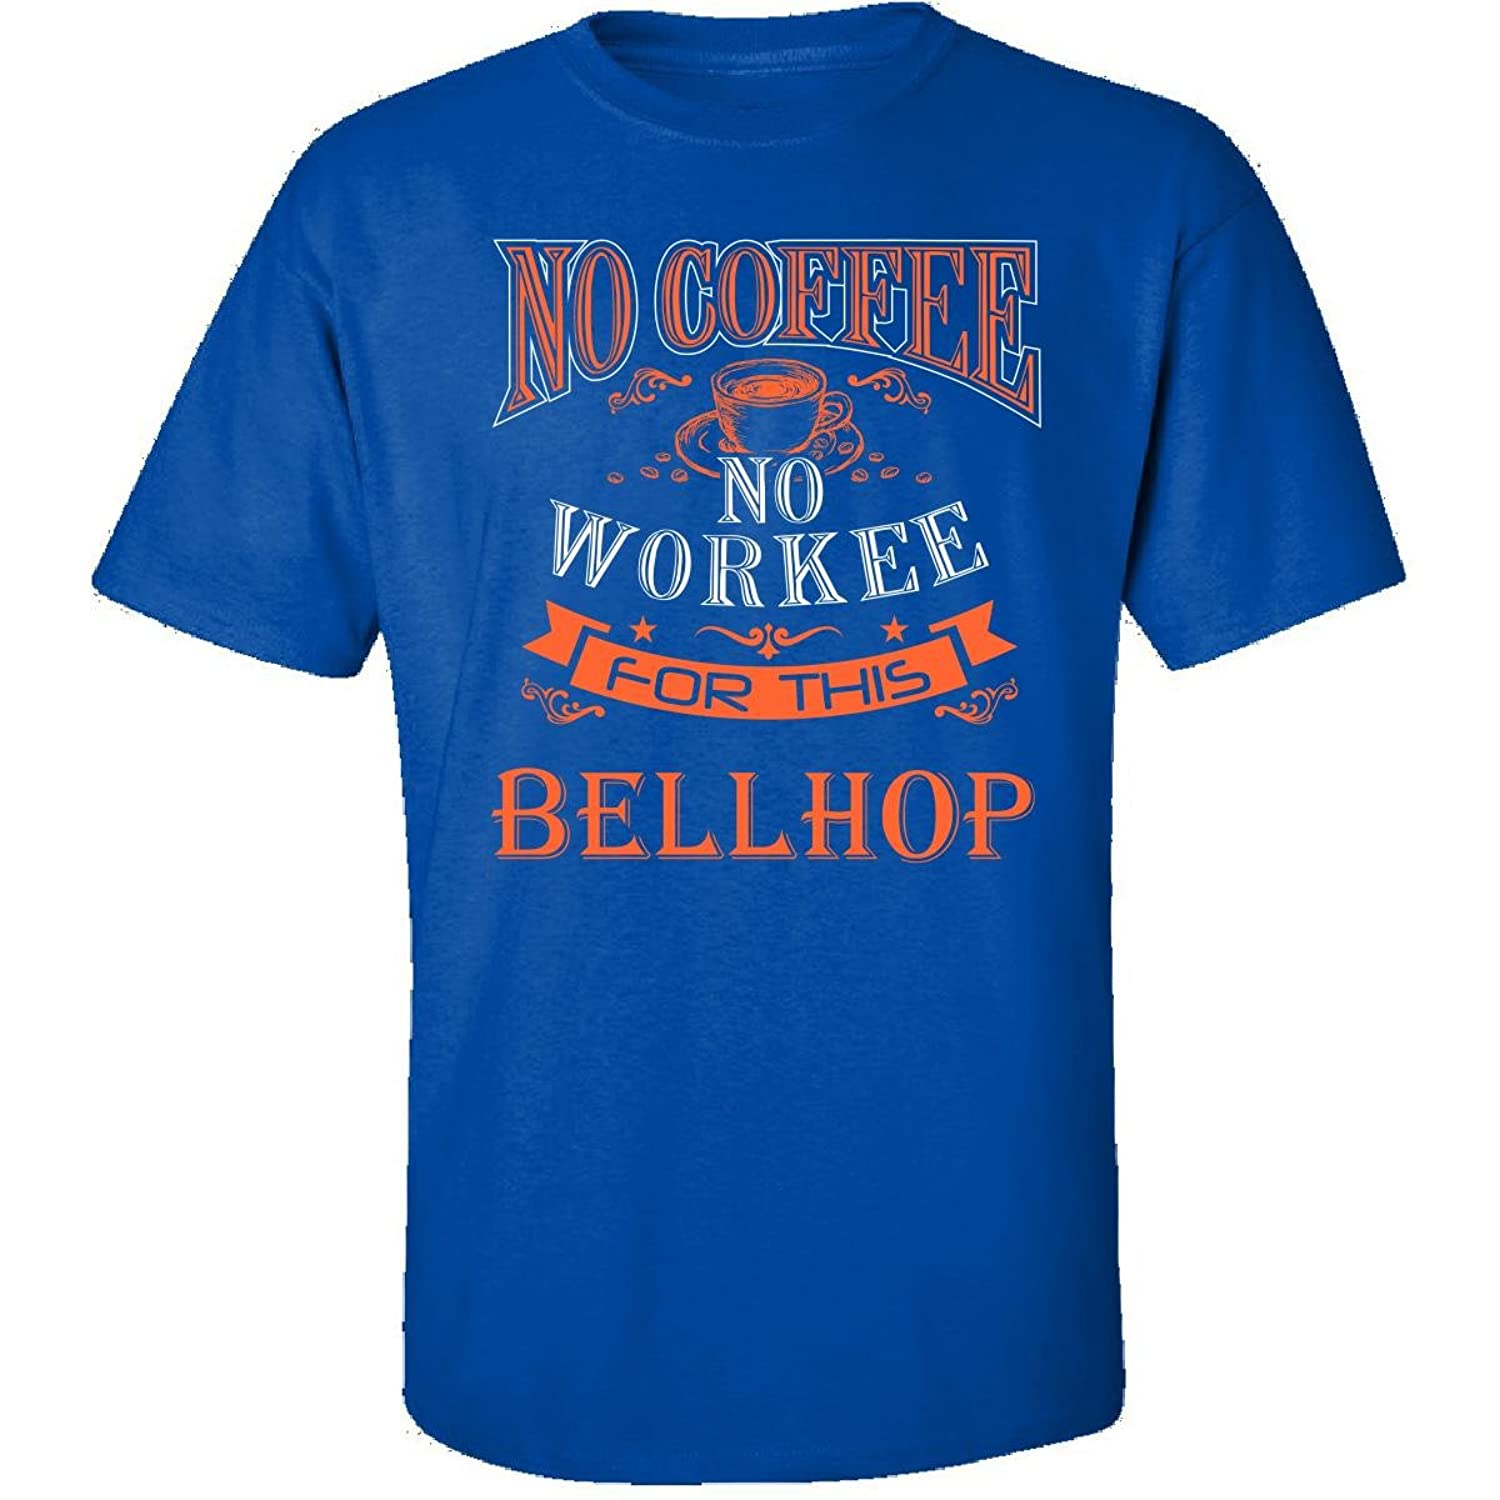 No Coffee No Workee For This Bellhop - Adult Shirt